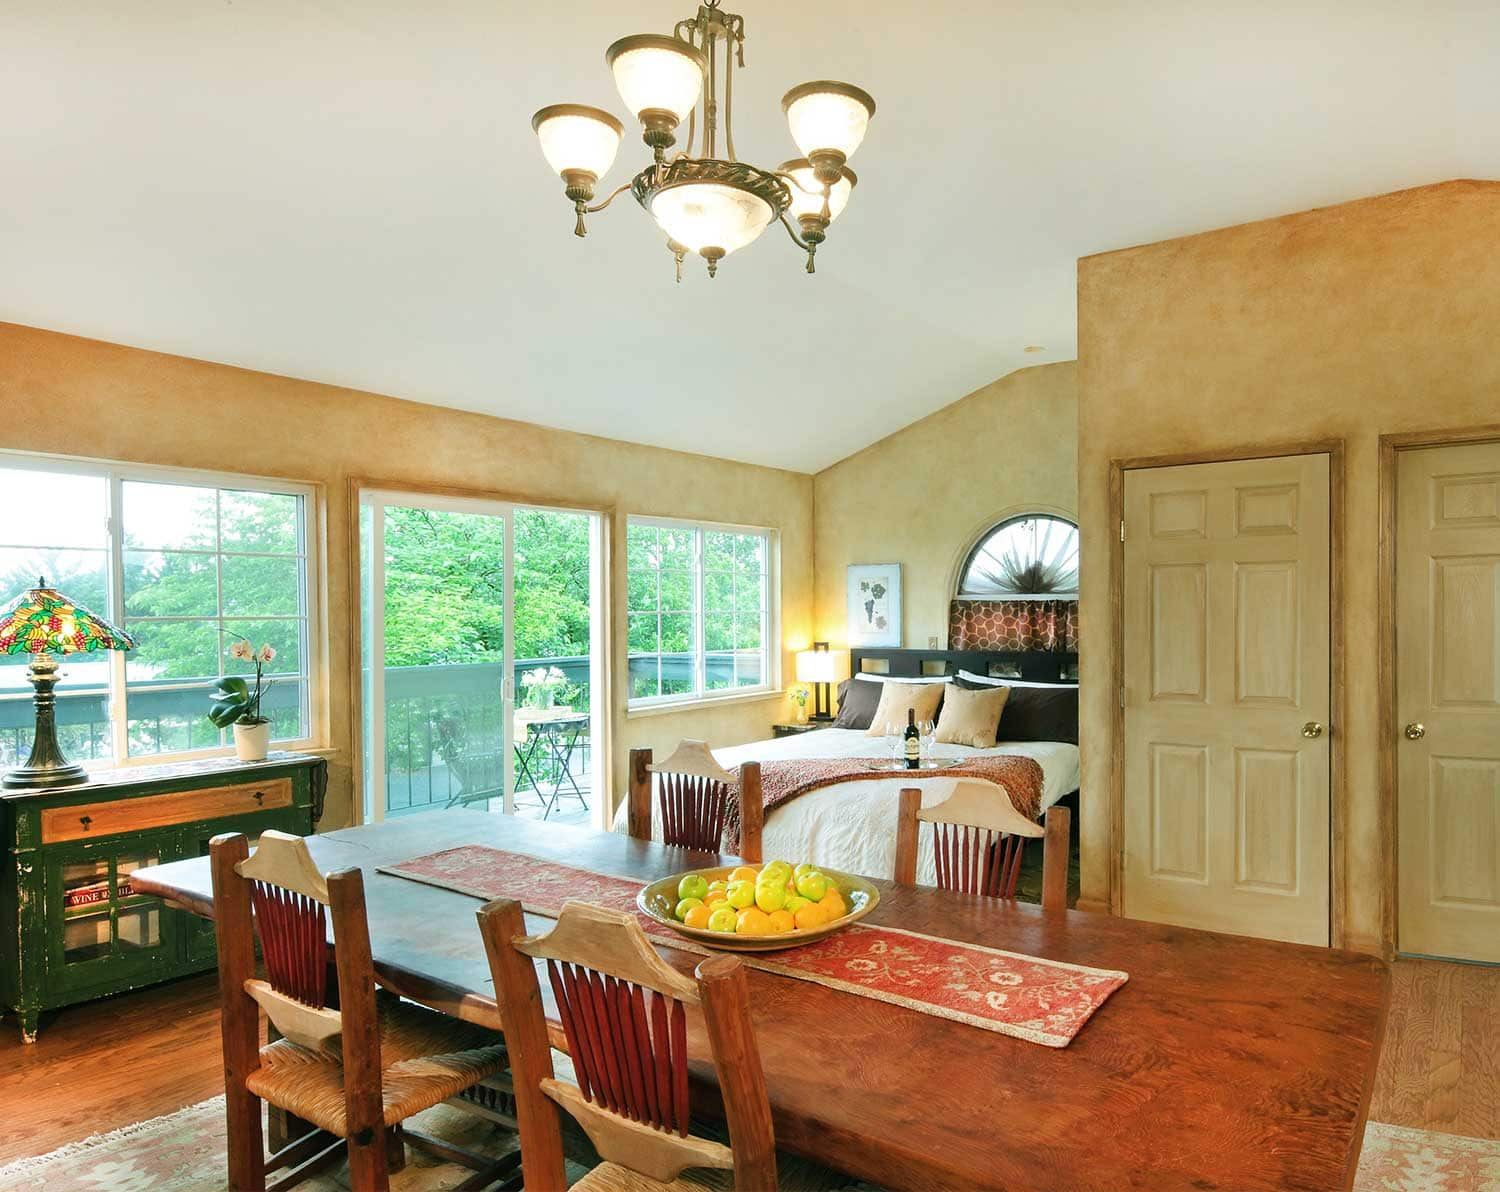 Dining table, luxurious king bed, and incredible vineyard views